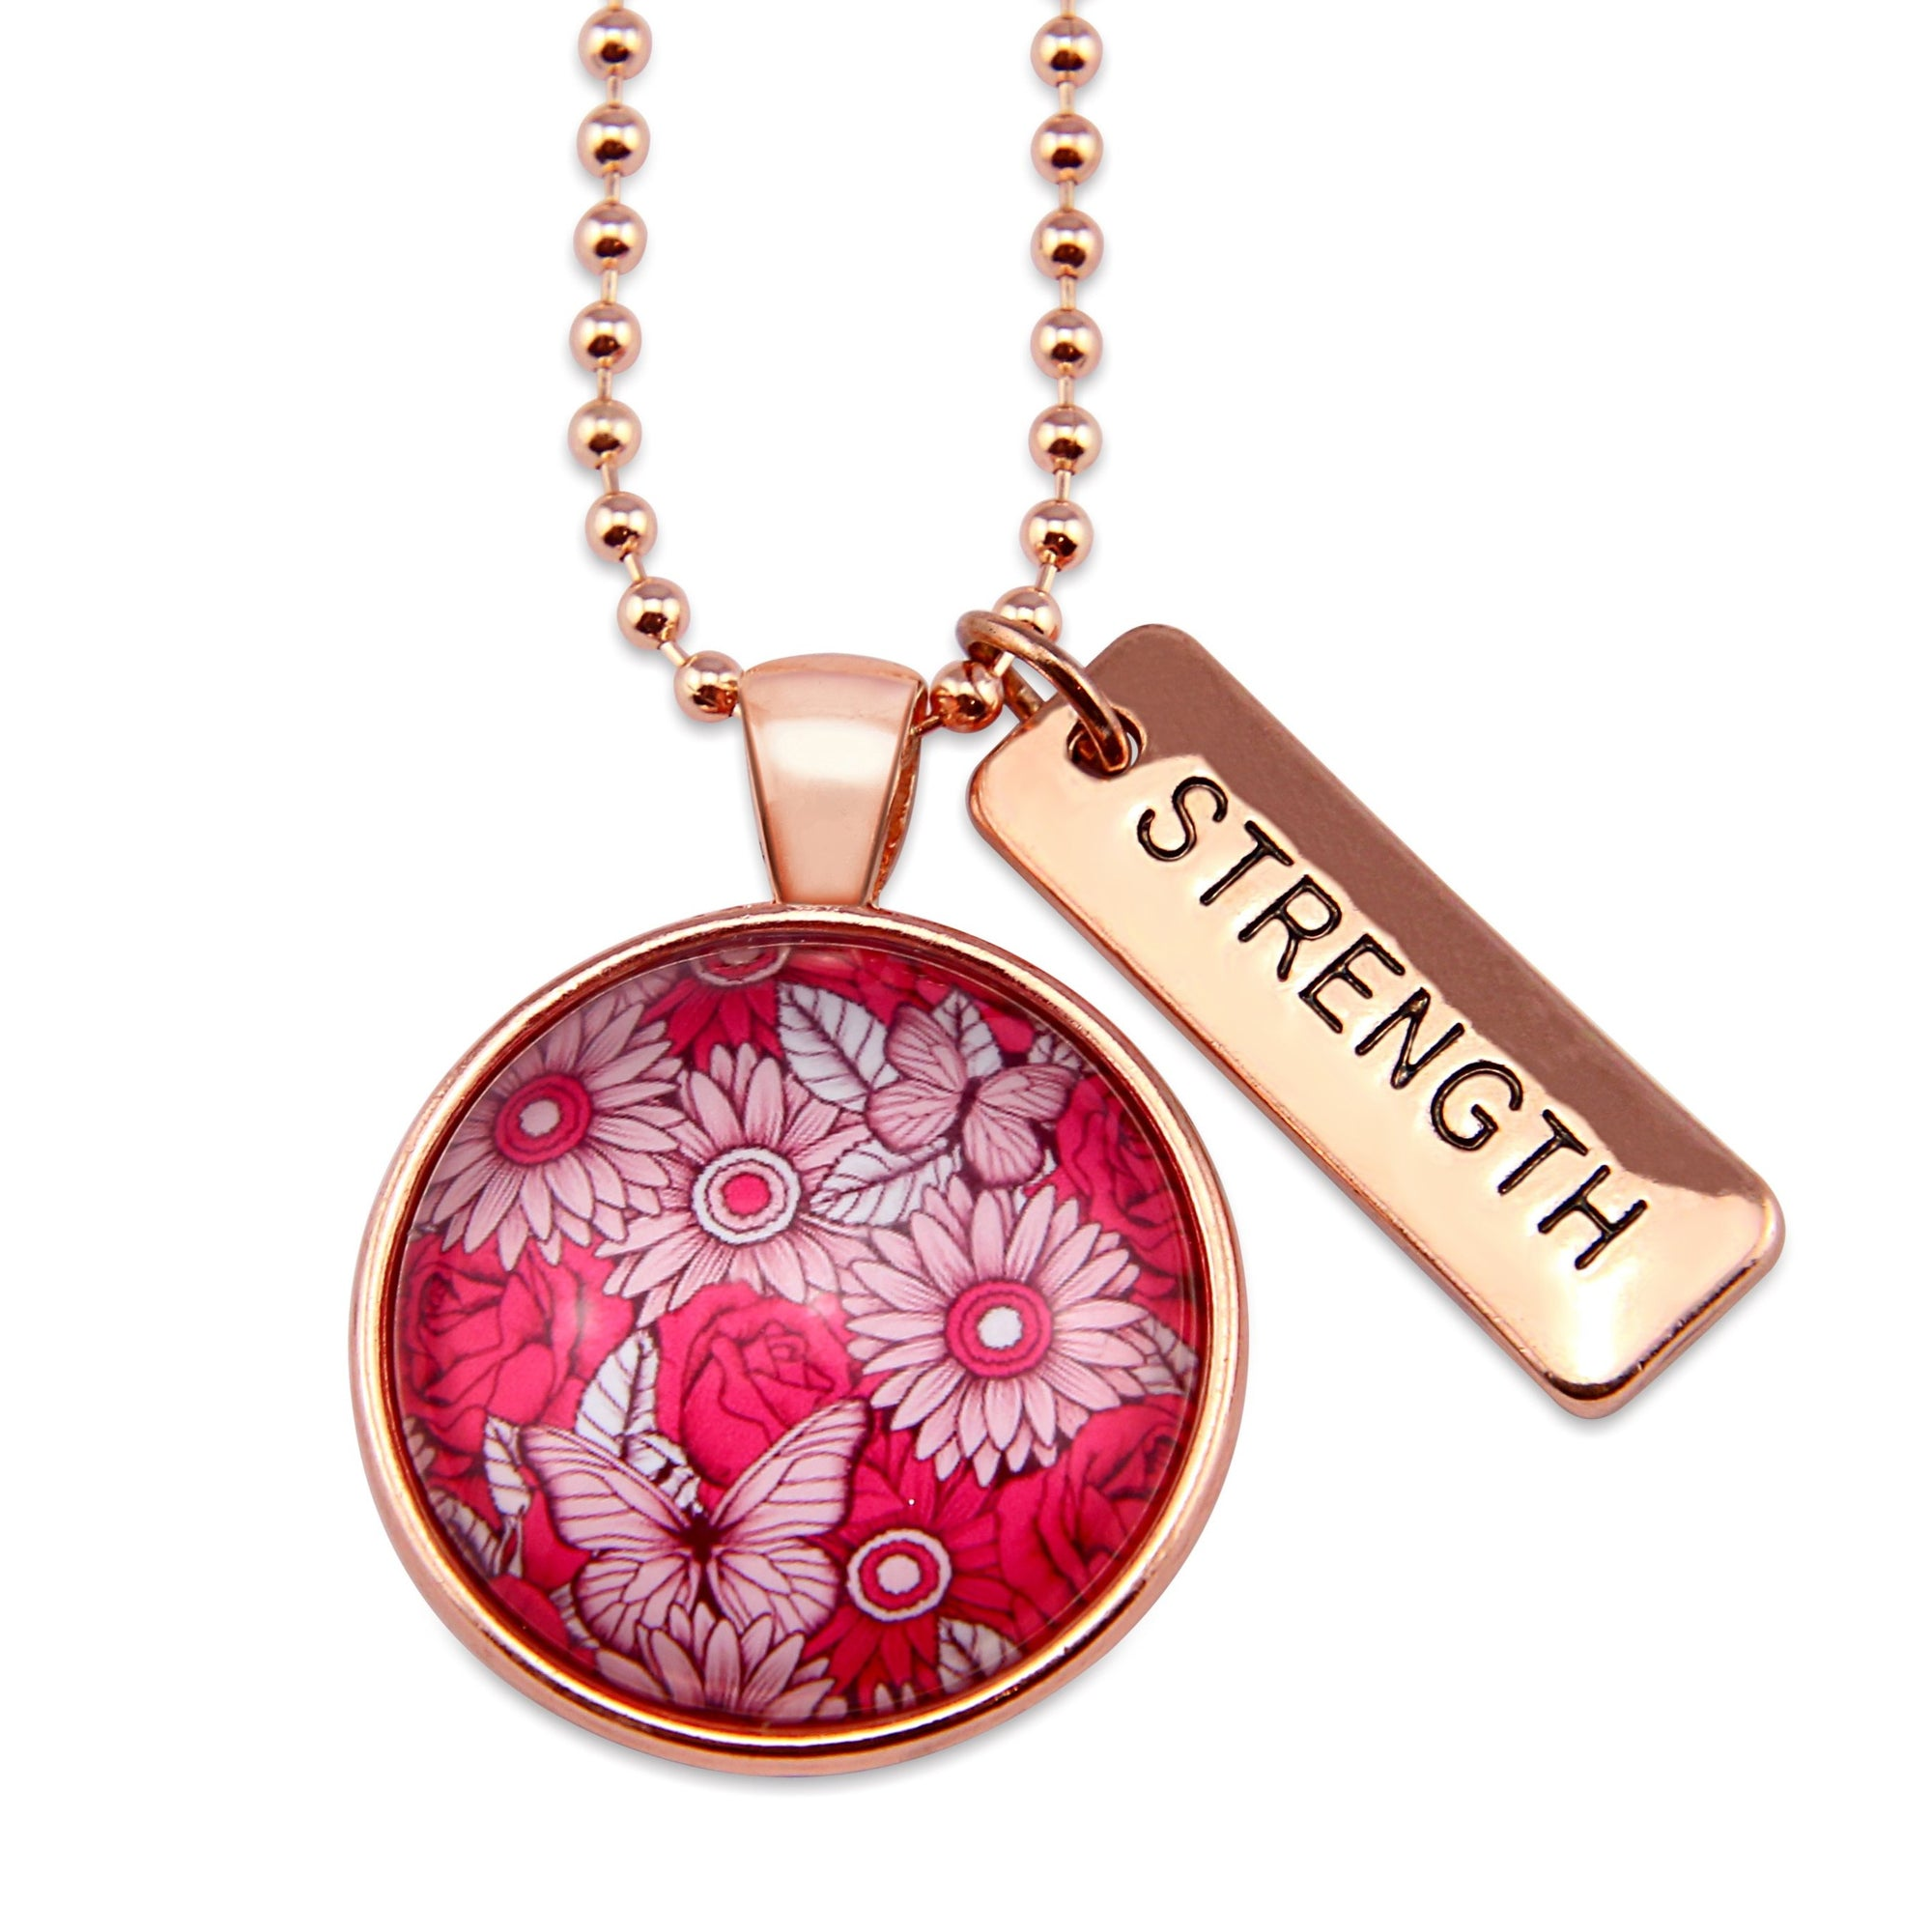 PINK COLLECTION - Rose Gold 'STRENGTH' Circle Necklace - Butterfly Patch (10663)